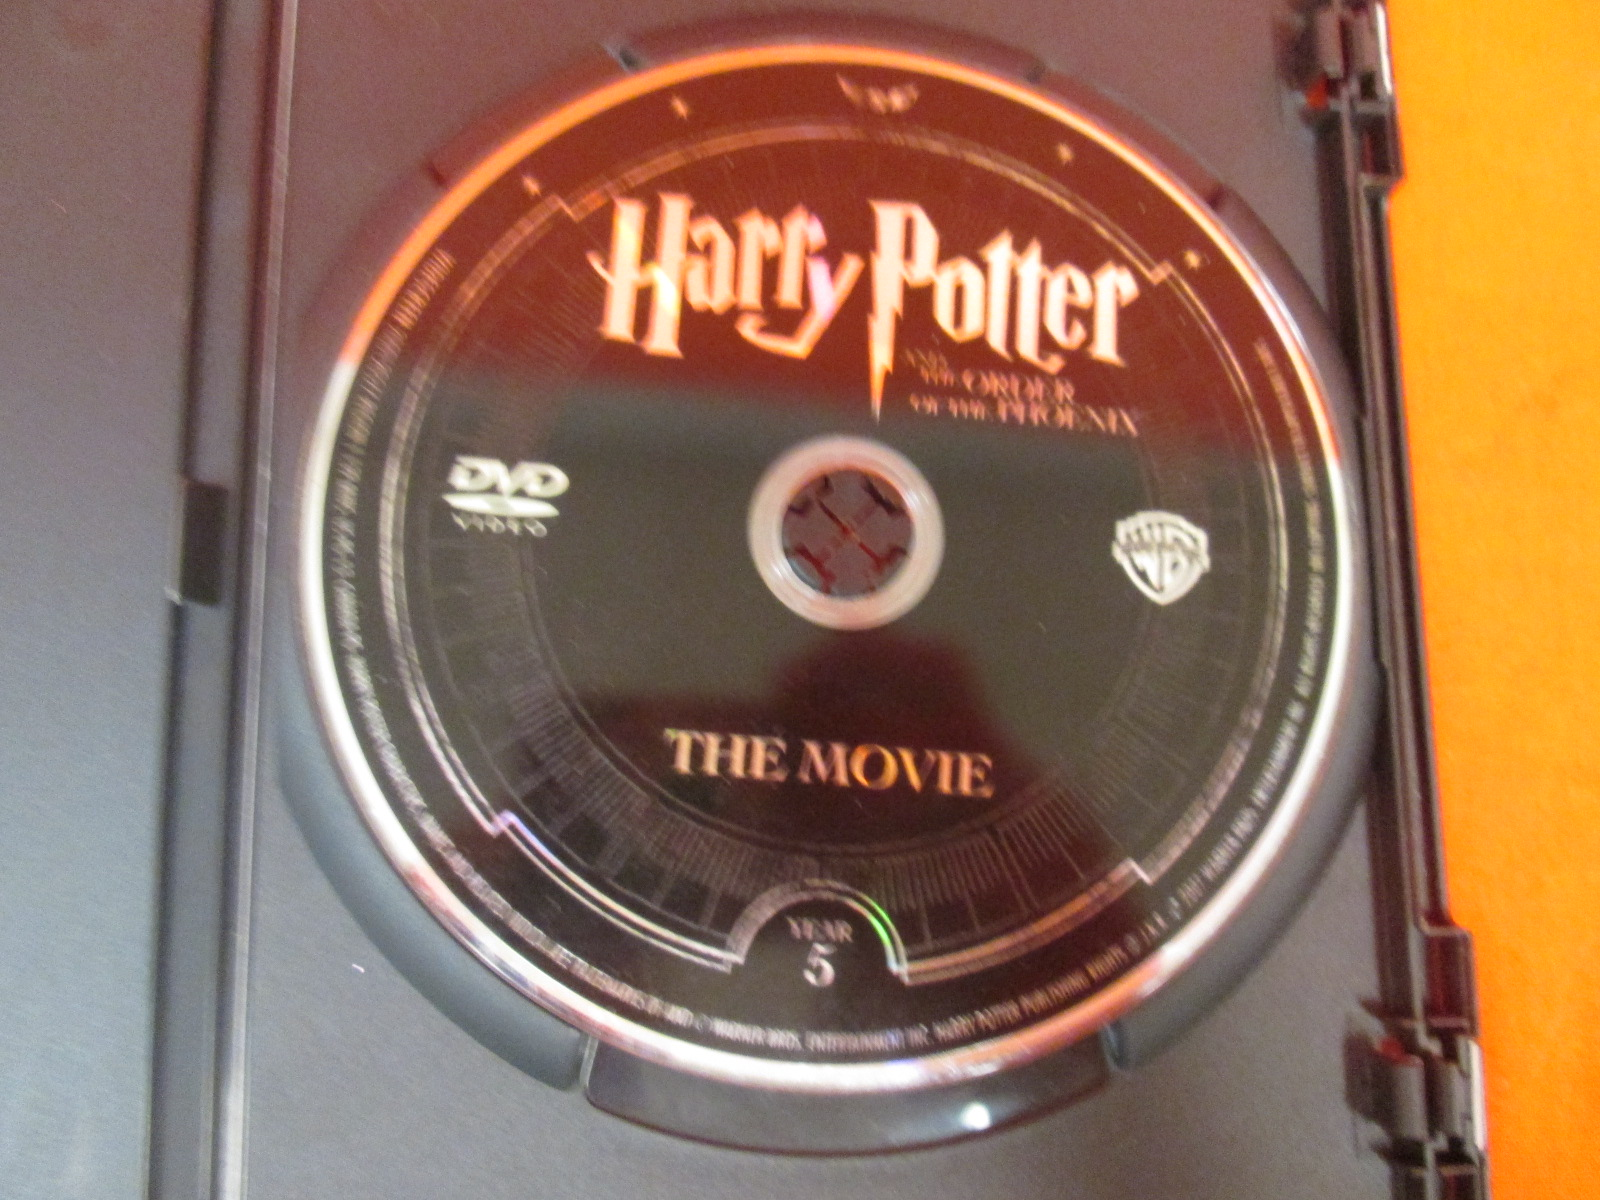 Harry Potter And The Order Of The Phoenix Widescreen Edition On DVD